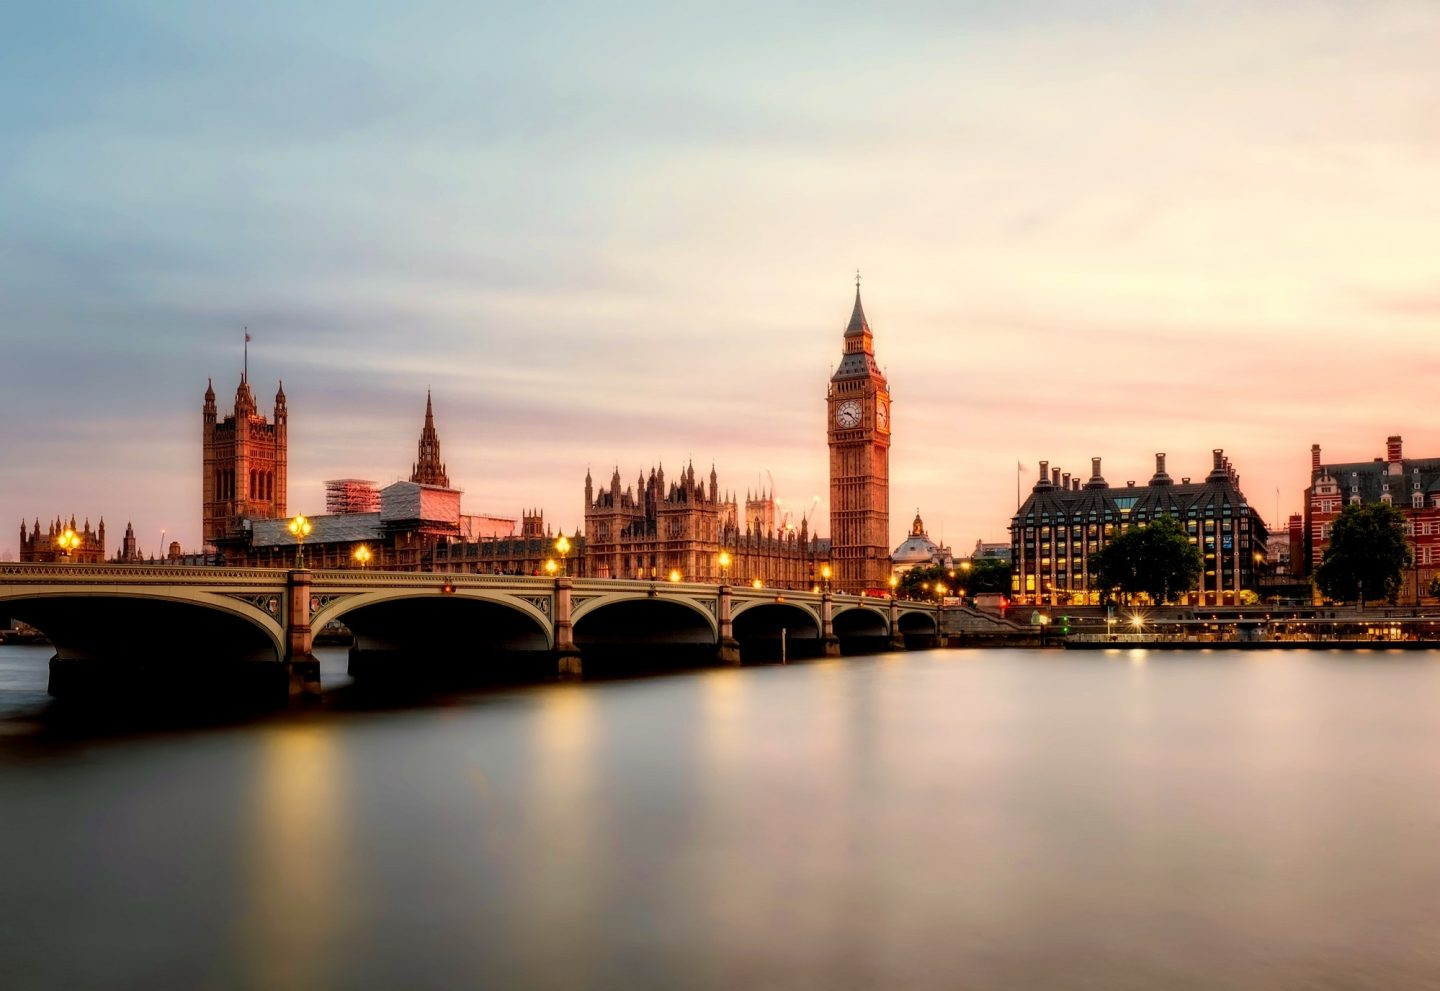 HOW TO EXPERIENCE LONDON IN NEW & EXCITING WAYS